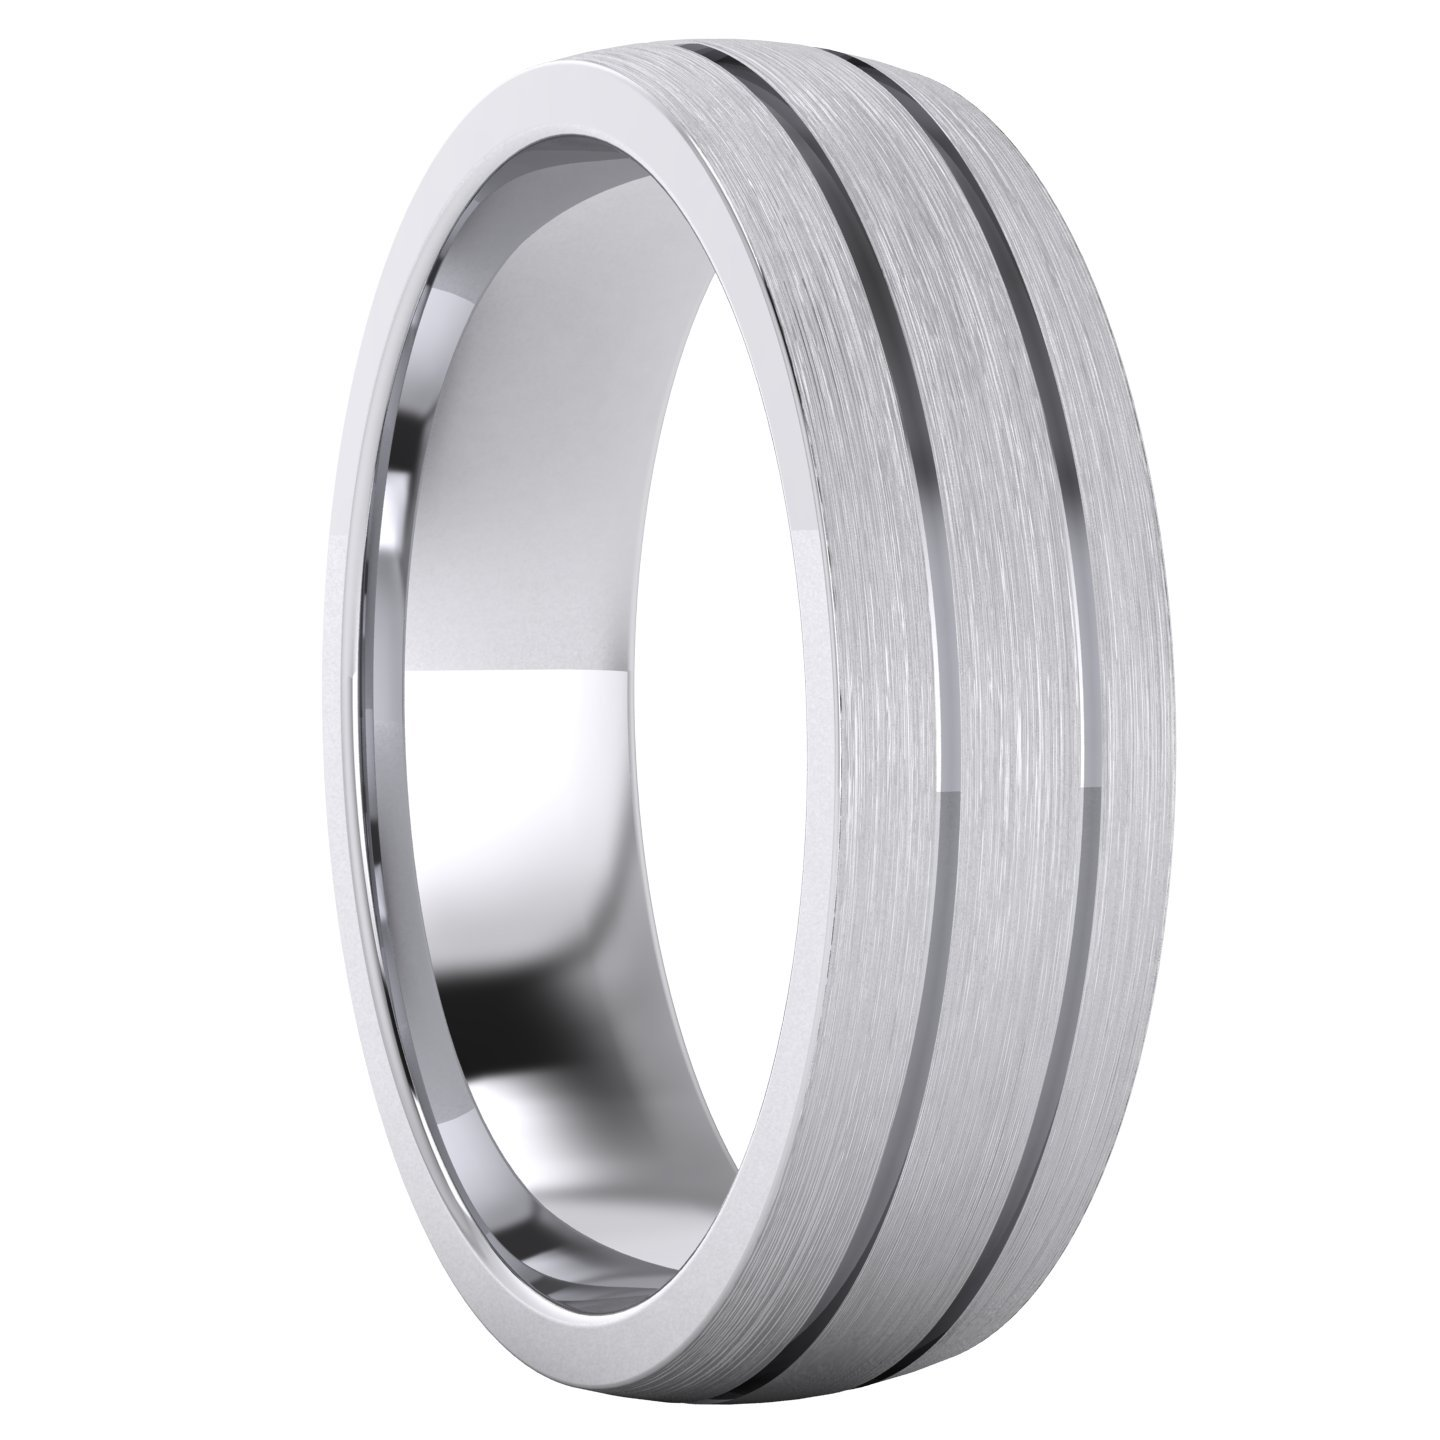 e3178d42cf2f Heavy Solid Sterling Silver 6mm Unisex Wedding Band Comfort Fit Domed Ring  Two Grooves Brushed Surface  Amazon.co.uk  Jewellery